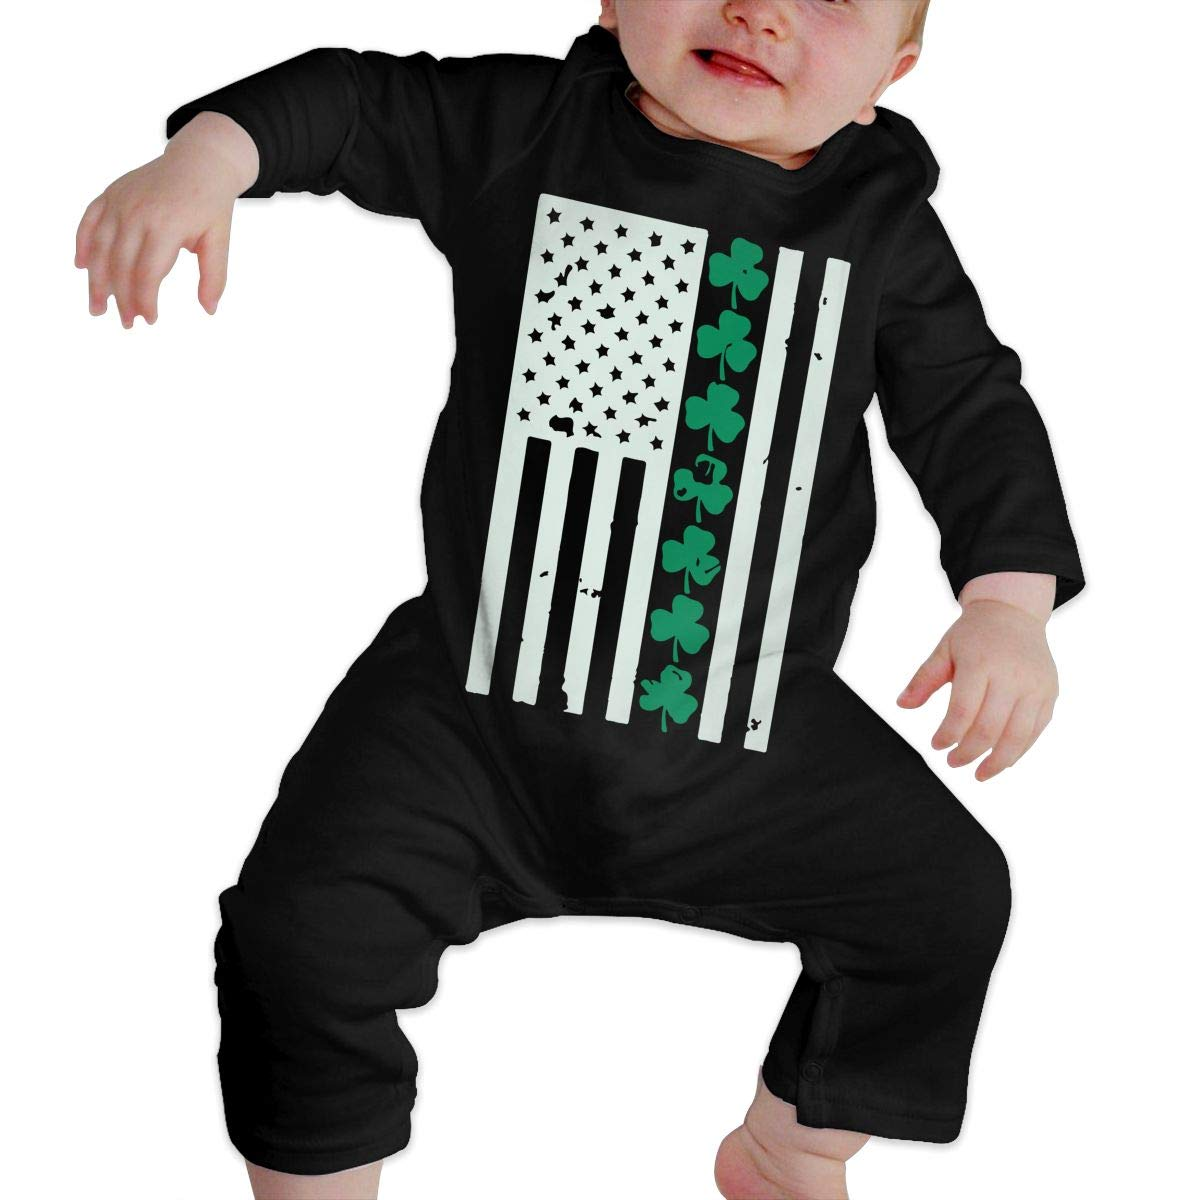 Mri-le1 Toddler Baby Boy Girl Bodysuits St.Patrick S Day Baby Clothes